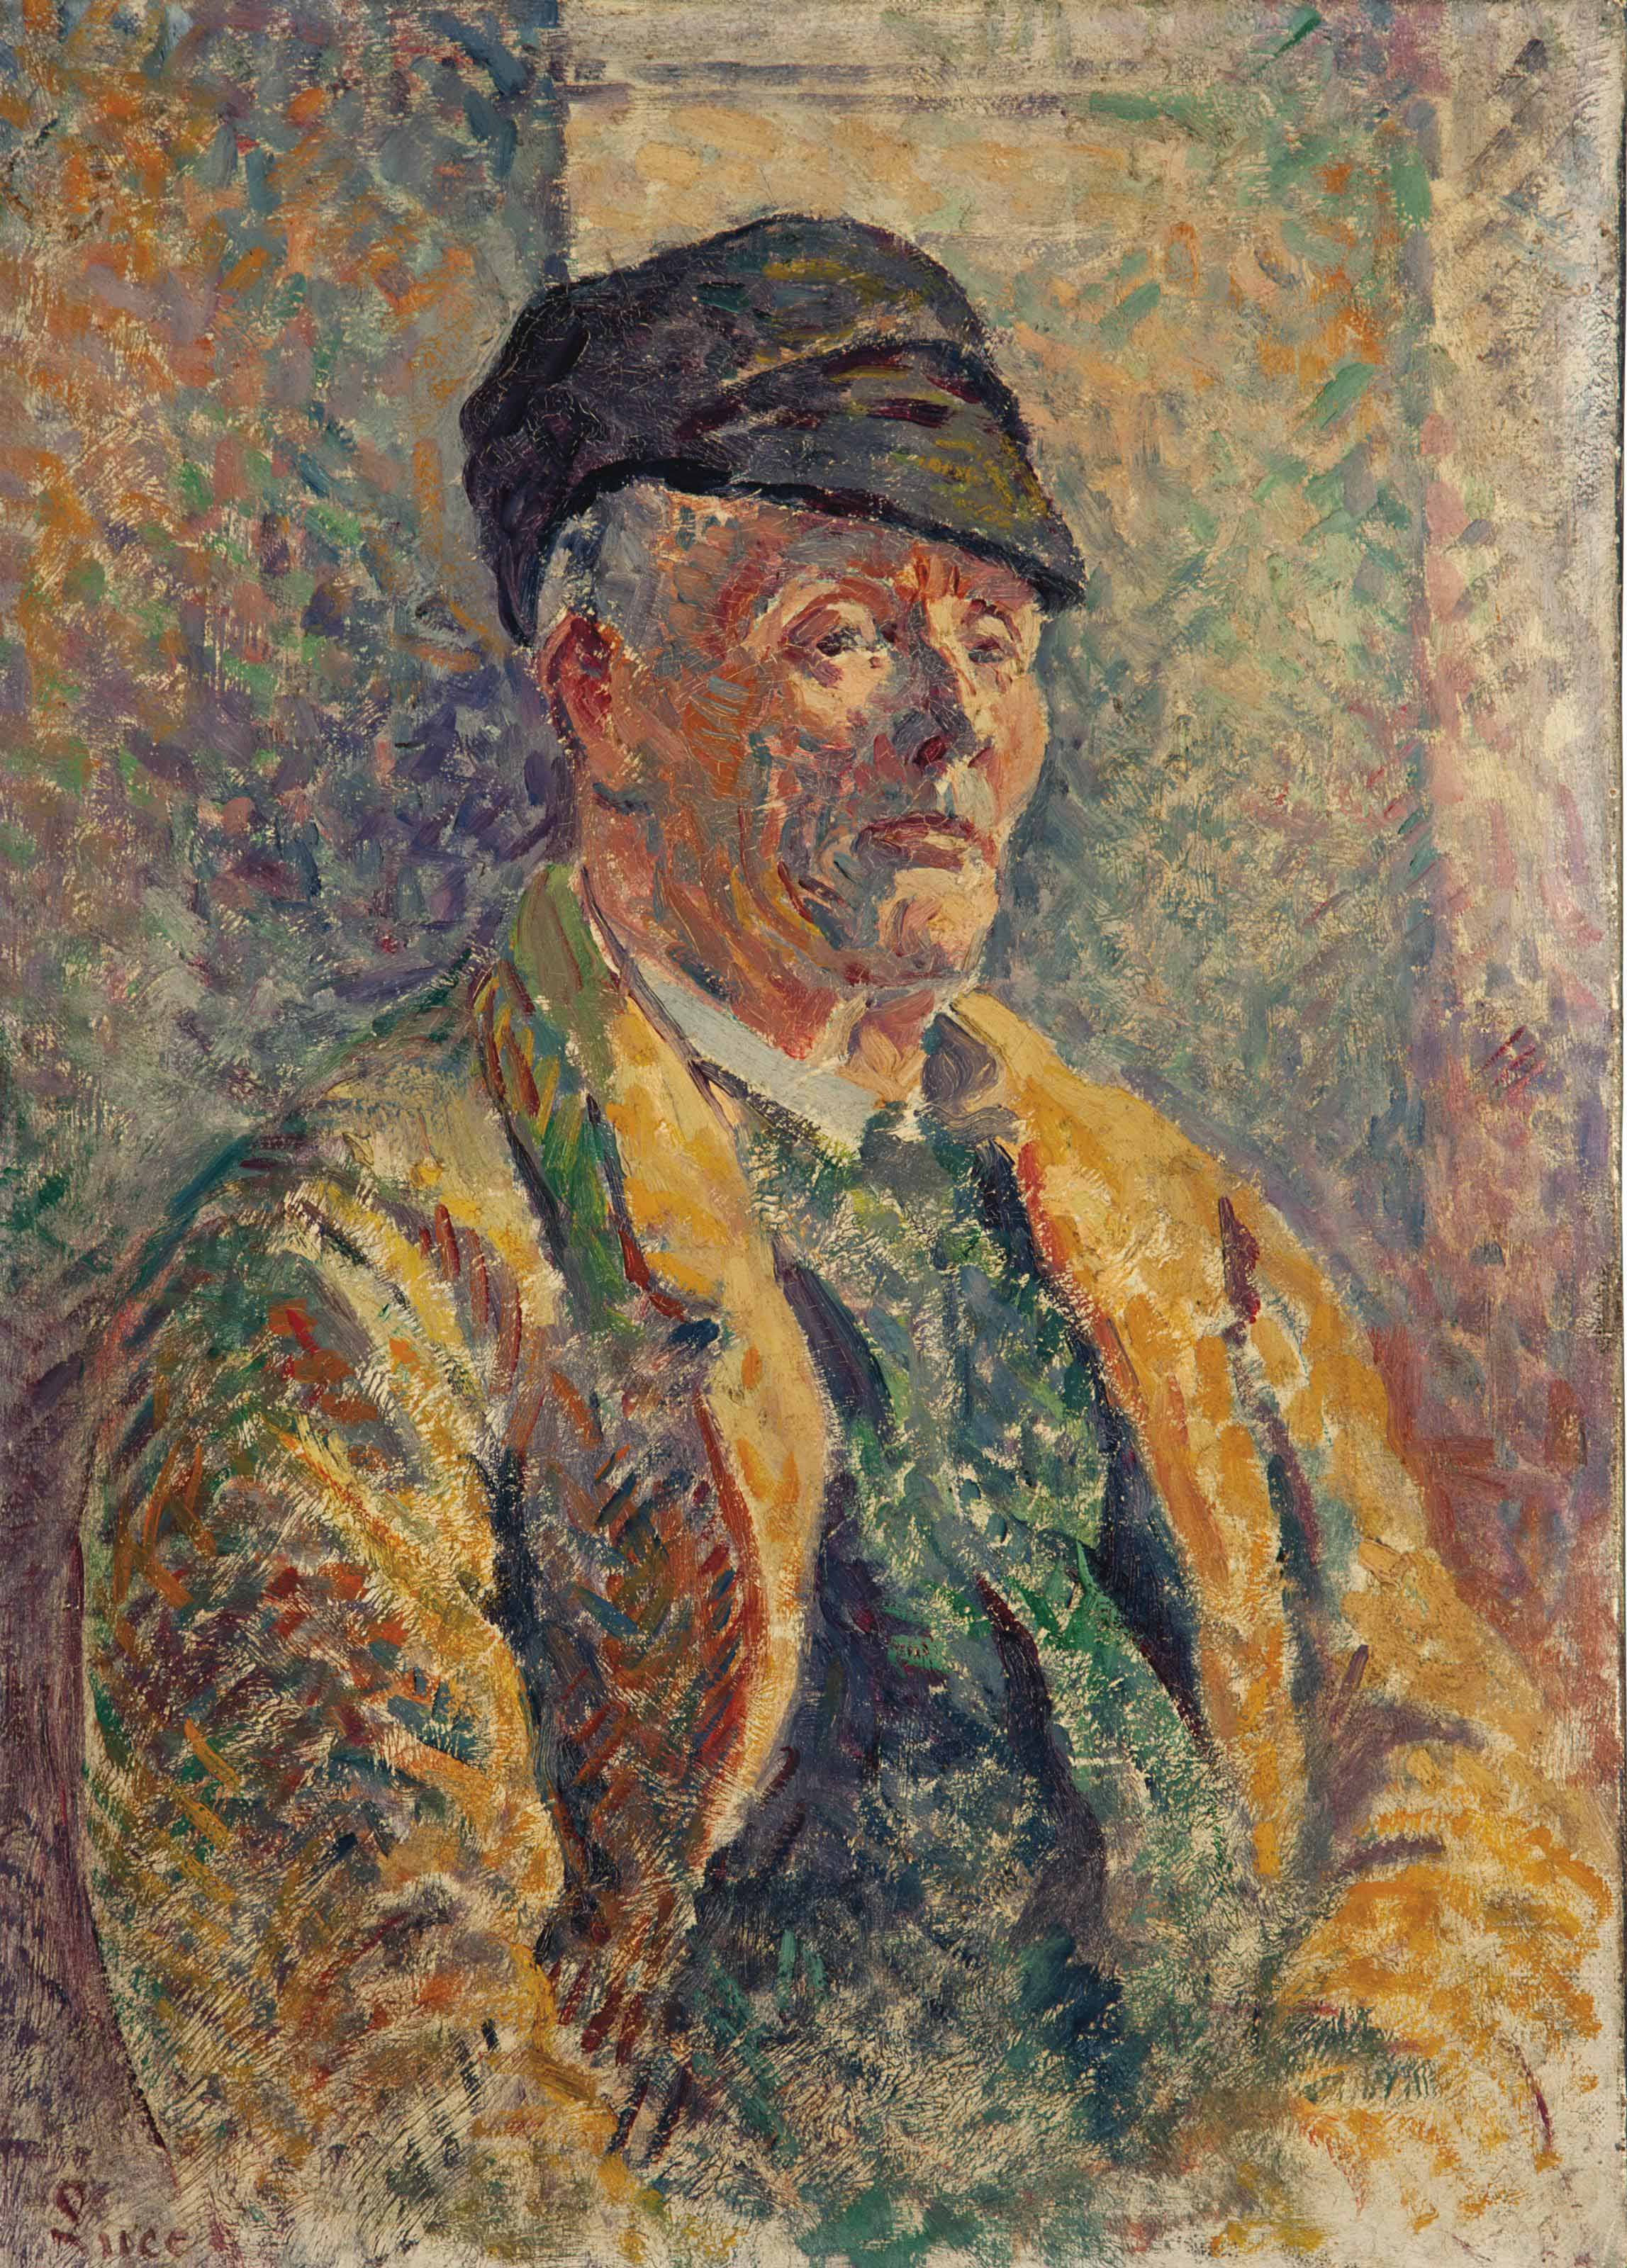 Maximilien Luce (French, 1858-